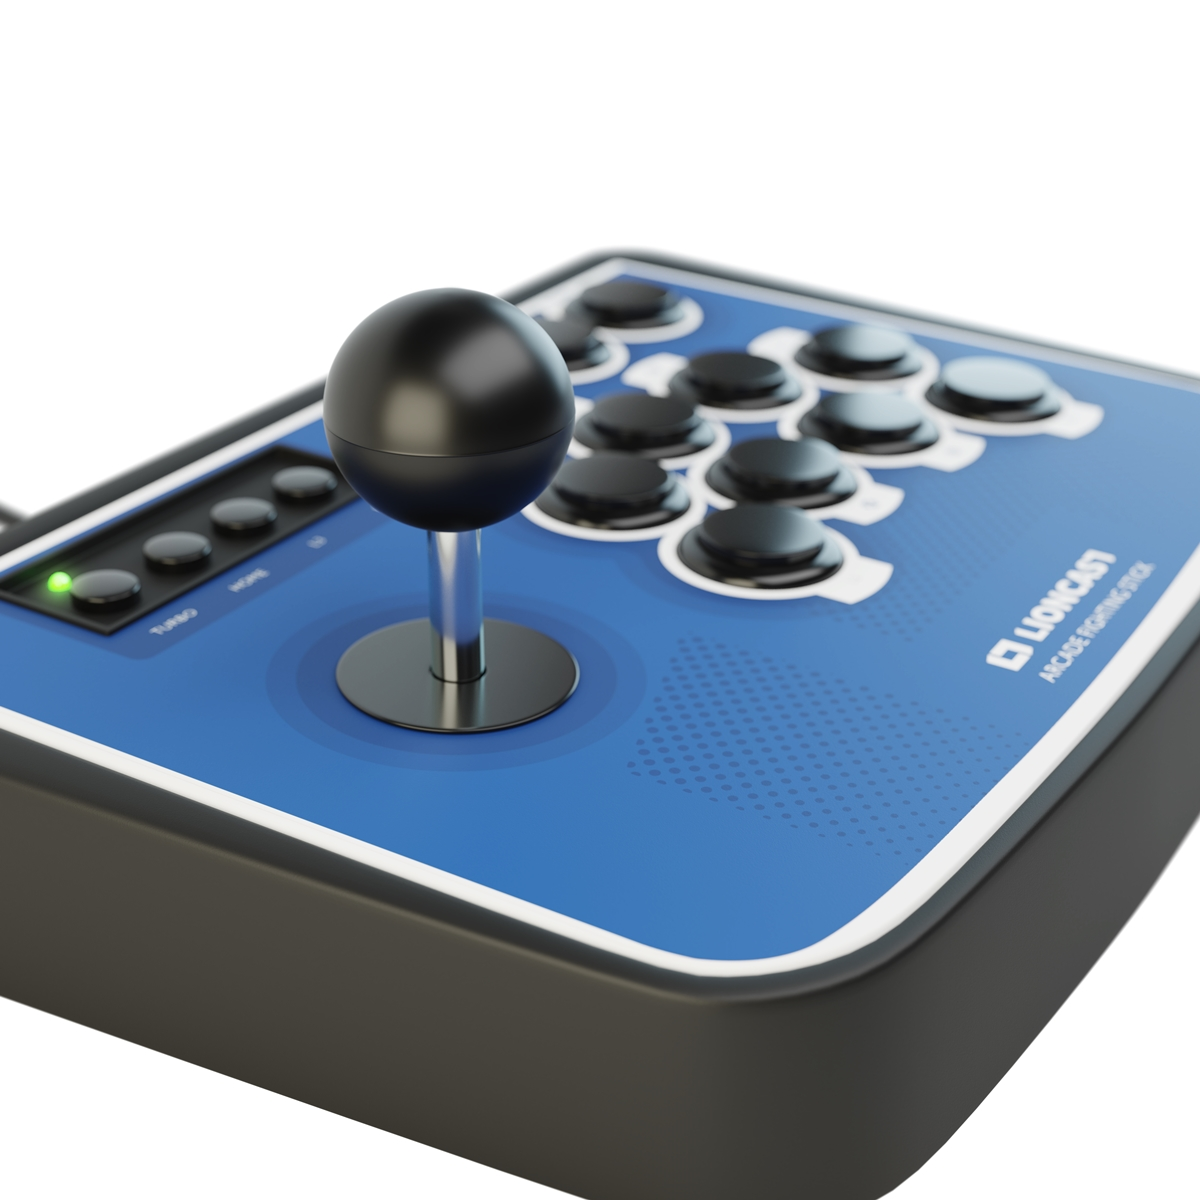 Lioncast Arcade Fighting Stick 4